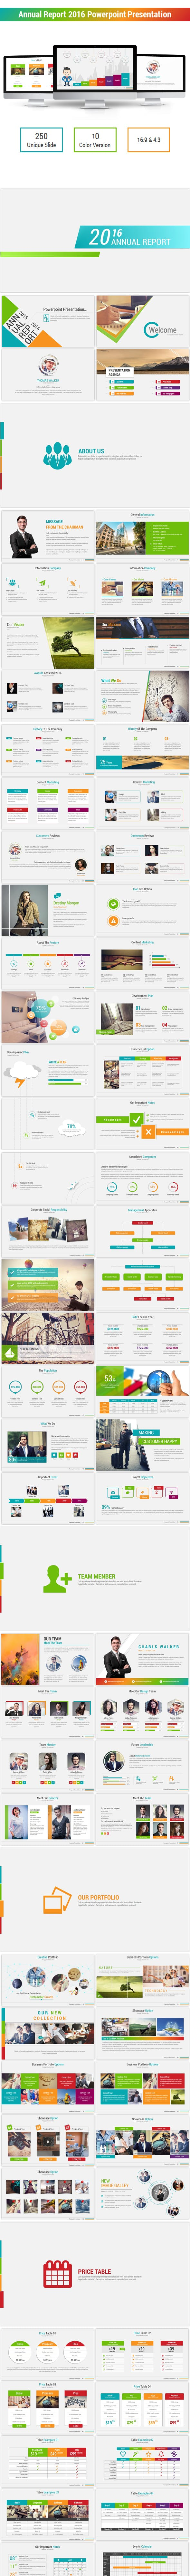 annual report 2016 powerpoint presentation templates by physicteach2016